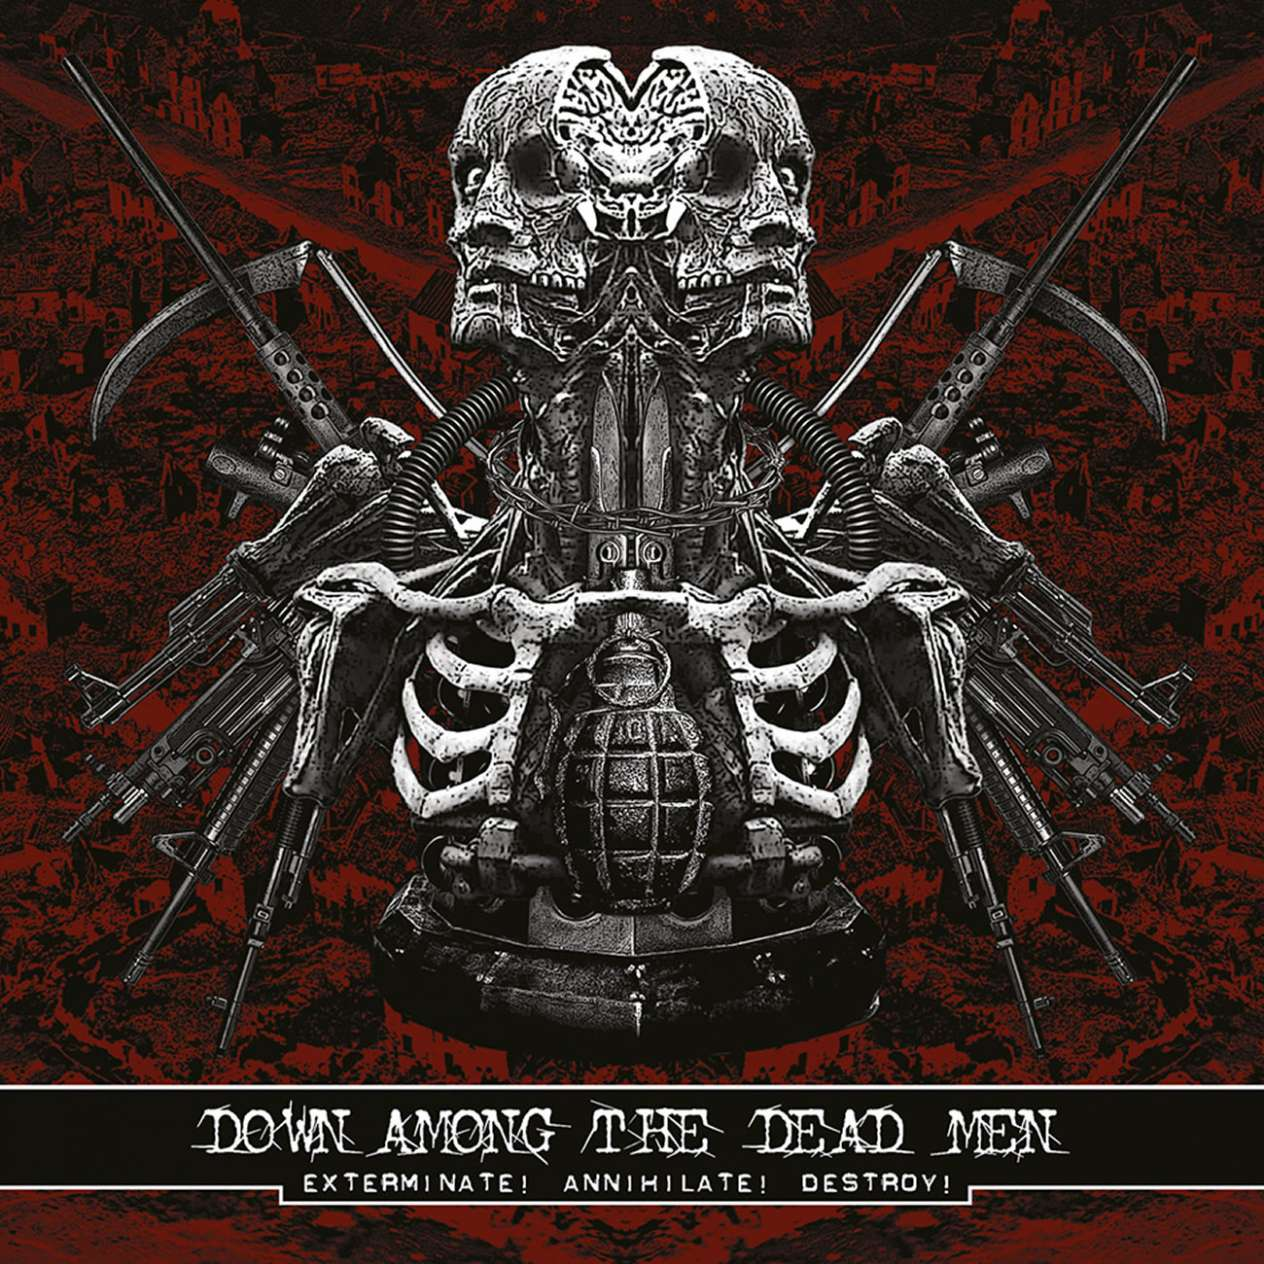 Down Among The Dead Men - Exterminate! Annihilate! Destroy! (Artwork)